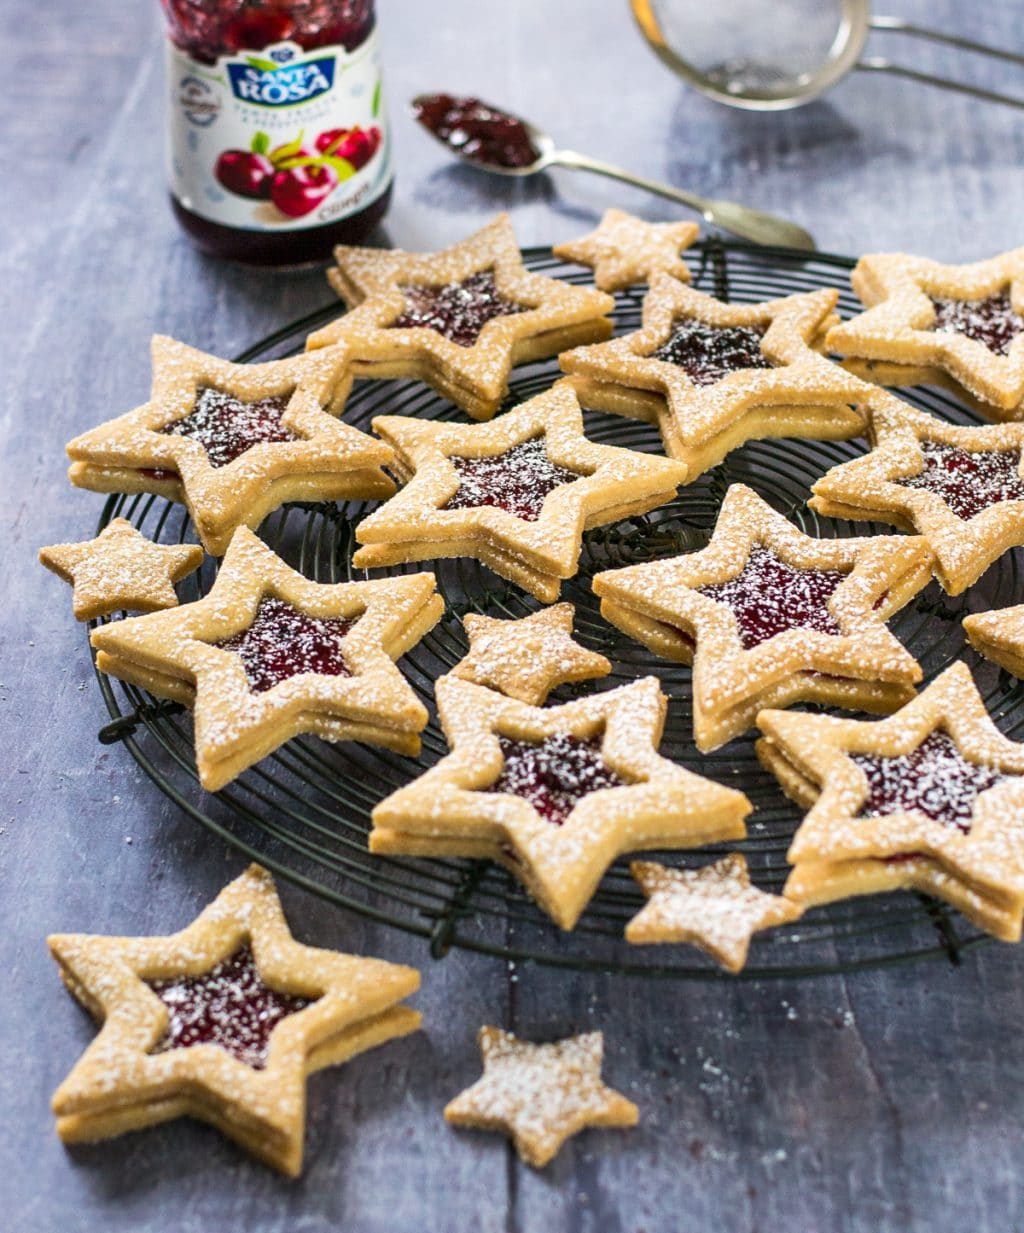 Vegan Jammy Star Biscuits from the Veg Space